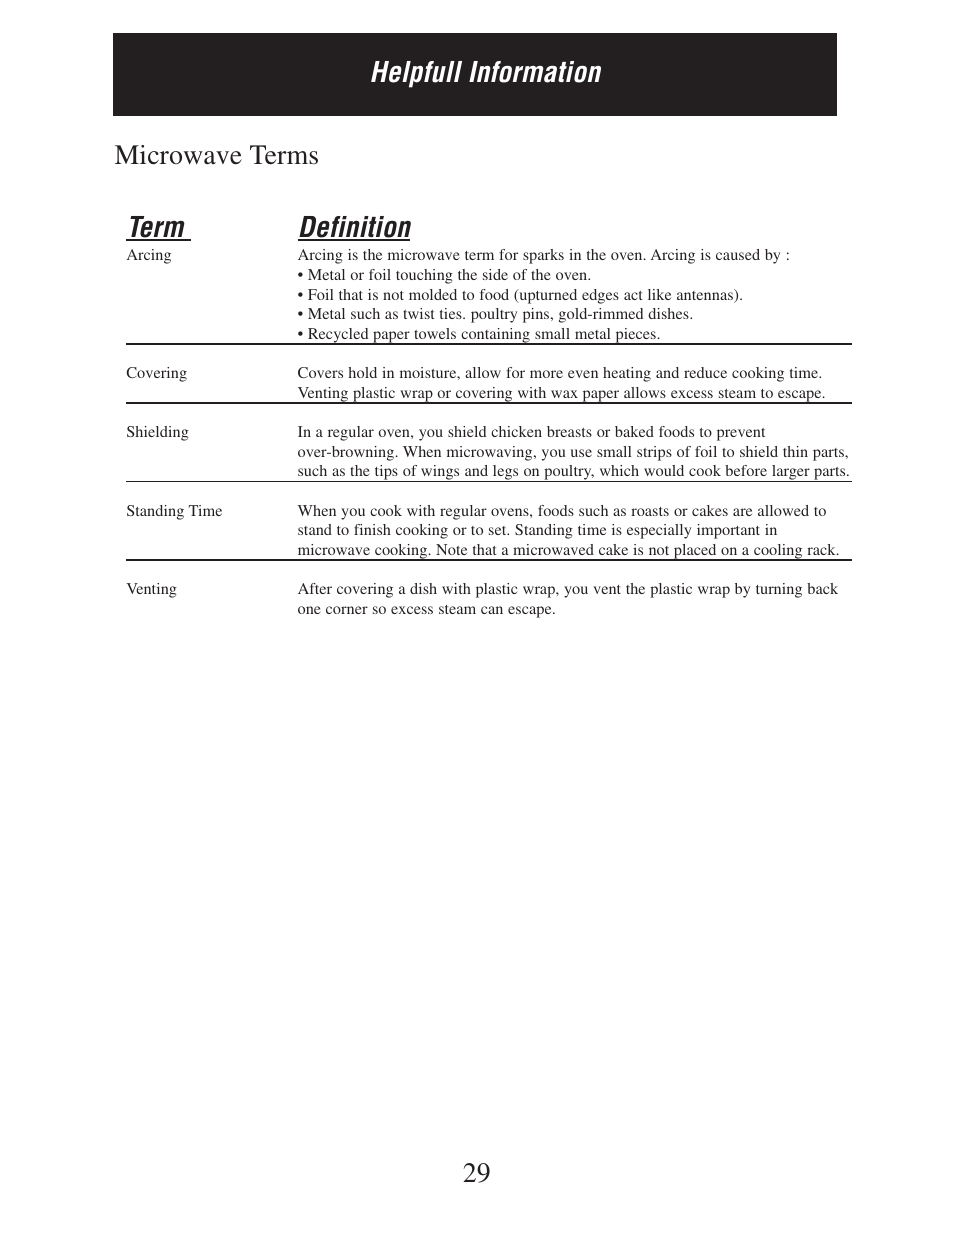 Microwave Definition Cooking Westinghouse Microwave